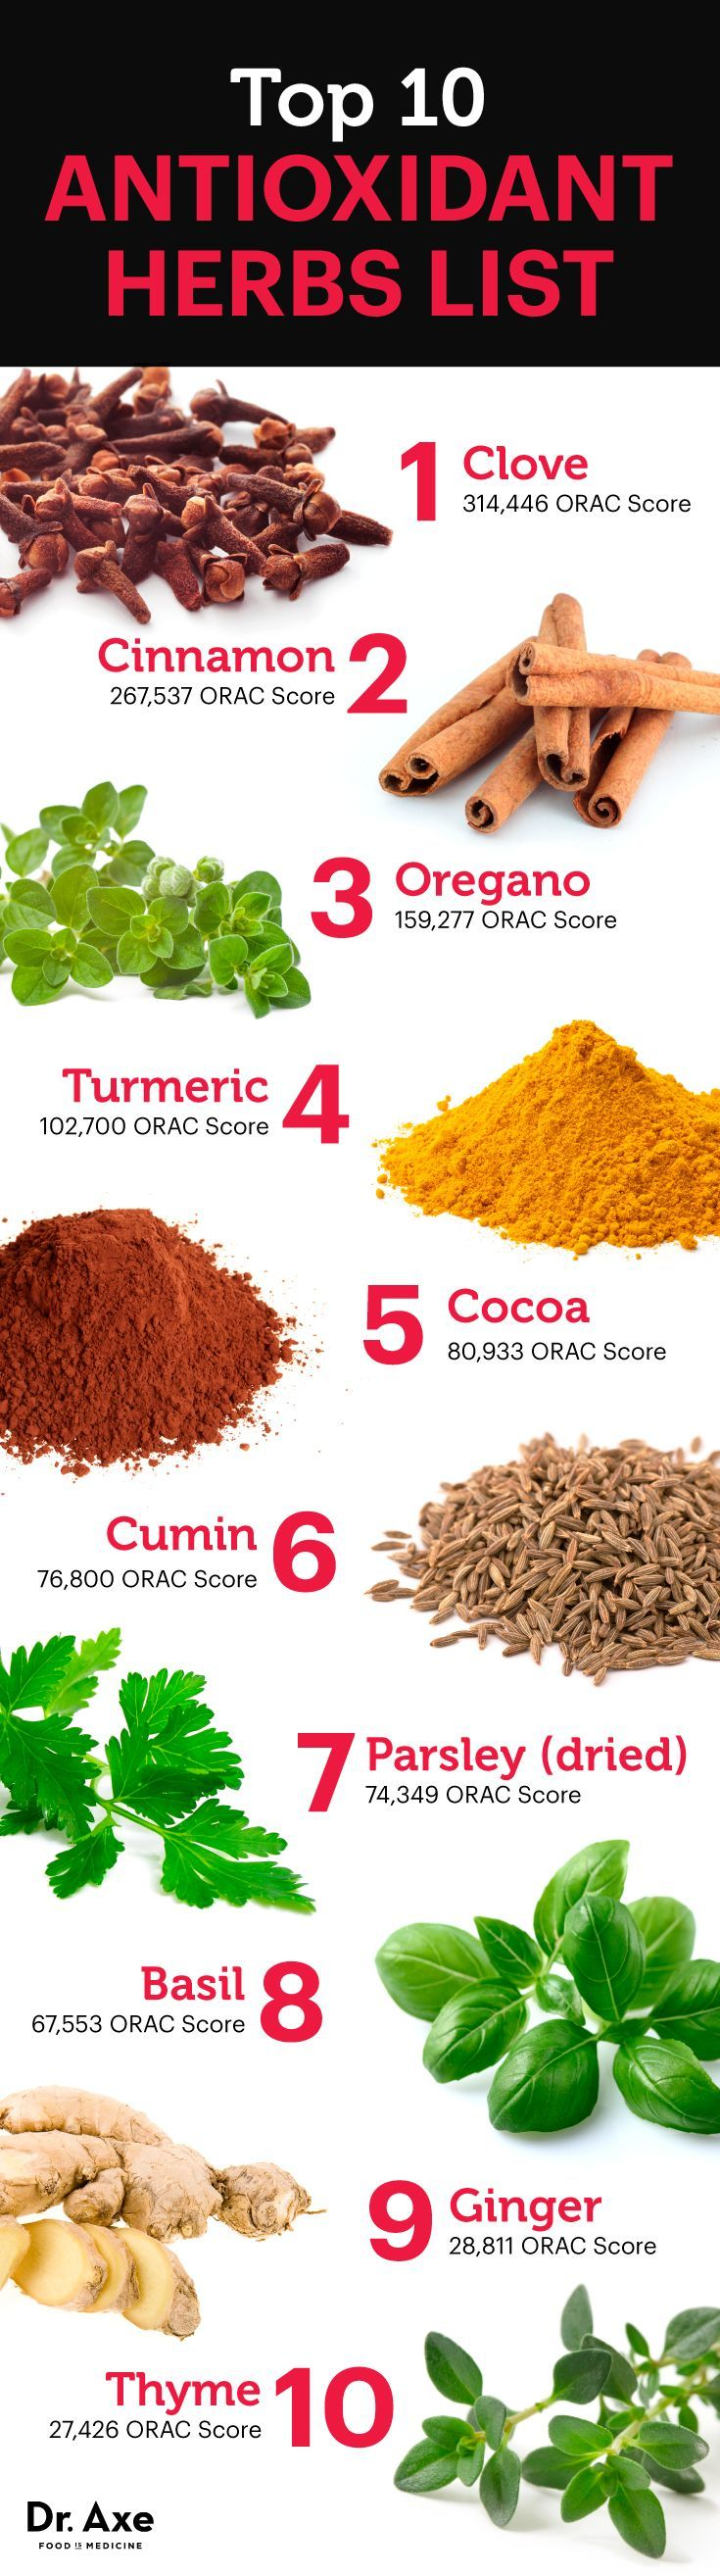 Top 10 High Antioxidant Foods - DrAxe.com #kombuchaguru #organic Also check out: http://kombuchaguru.com